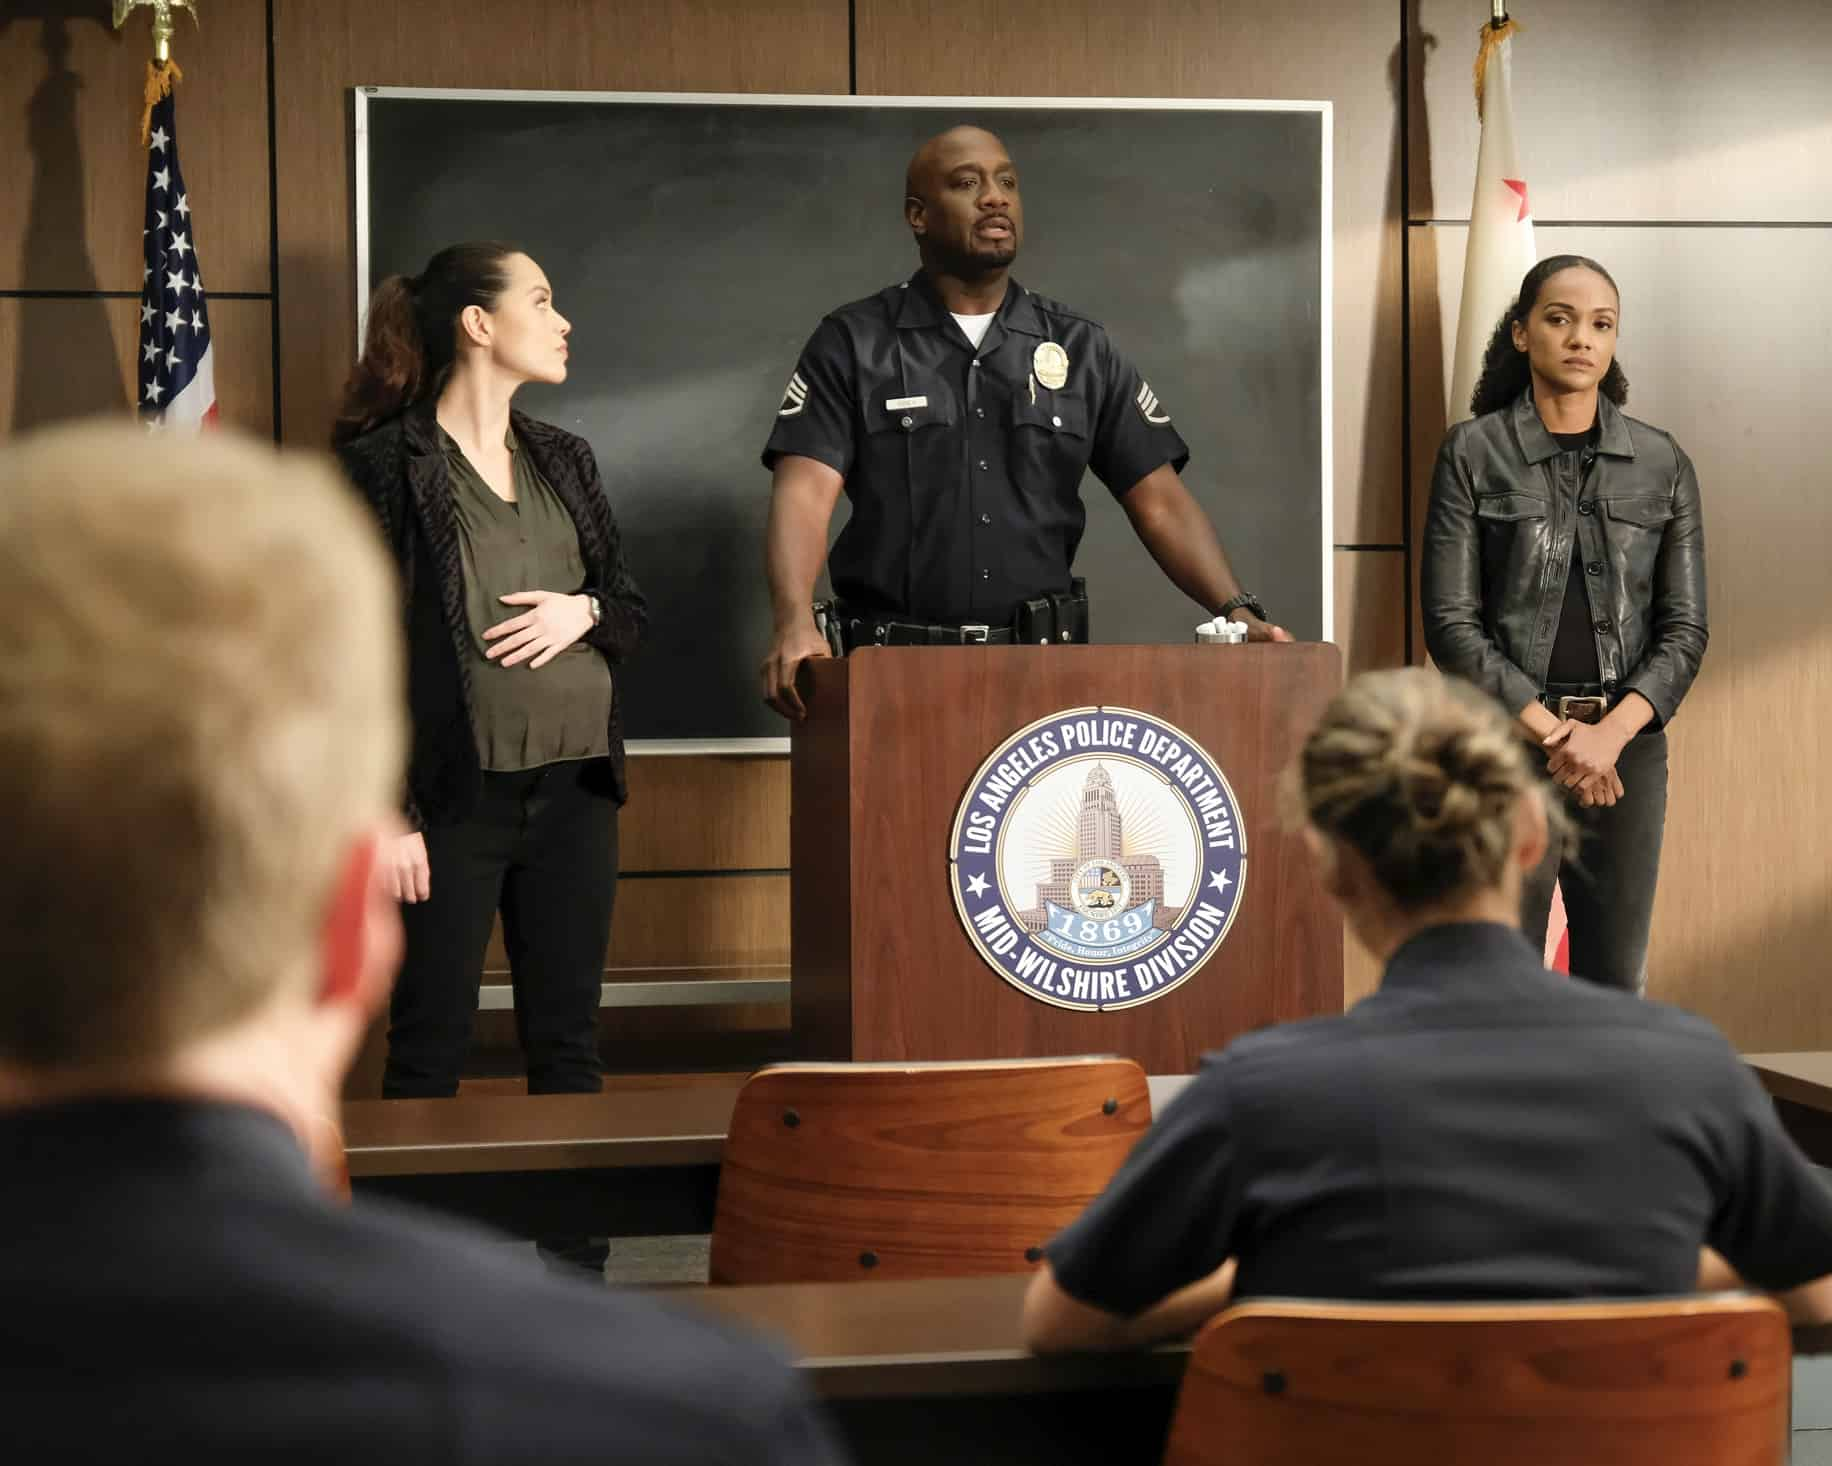 """THE ROOKIE Season 3 Episode 14 - """"Threshold"""" – Officer Nolan mildly injures himself while chasing down a shoplifter and the local DA wants to charge the suspect with assault despite Nolan's wishes. Meanwhile, Lucy goes undercover, Lopez' wedding venue is seized by the FBI and Nolan meets his new neighbor on the season finale of """"The Rookie,"""" SUNDAY, MAY 16 (10:00-11:00 p.m. EDT), on ABC. (ABC/Erica Parise) ALYSSA DIAZ, RICHARD T. JONES, MEKIA COX"""